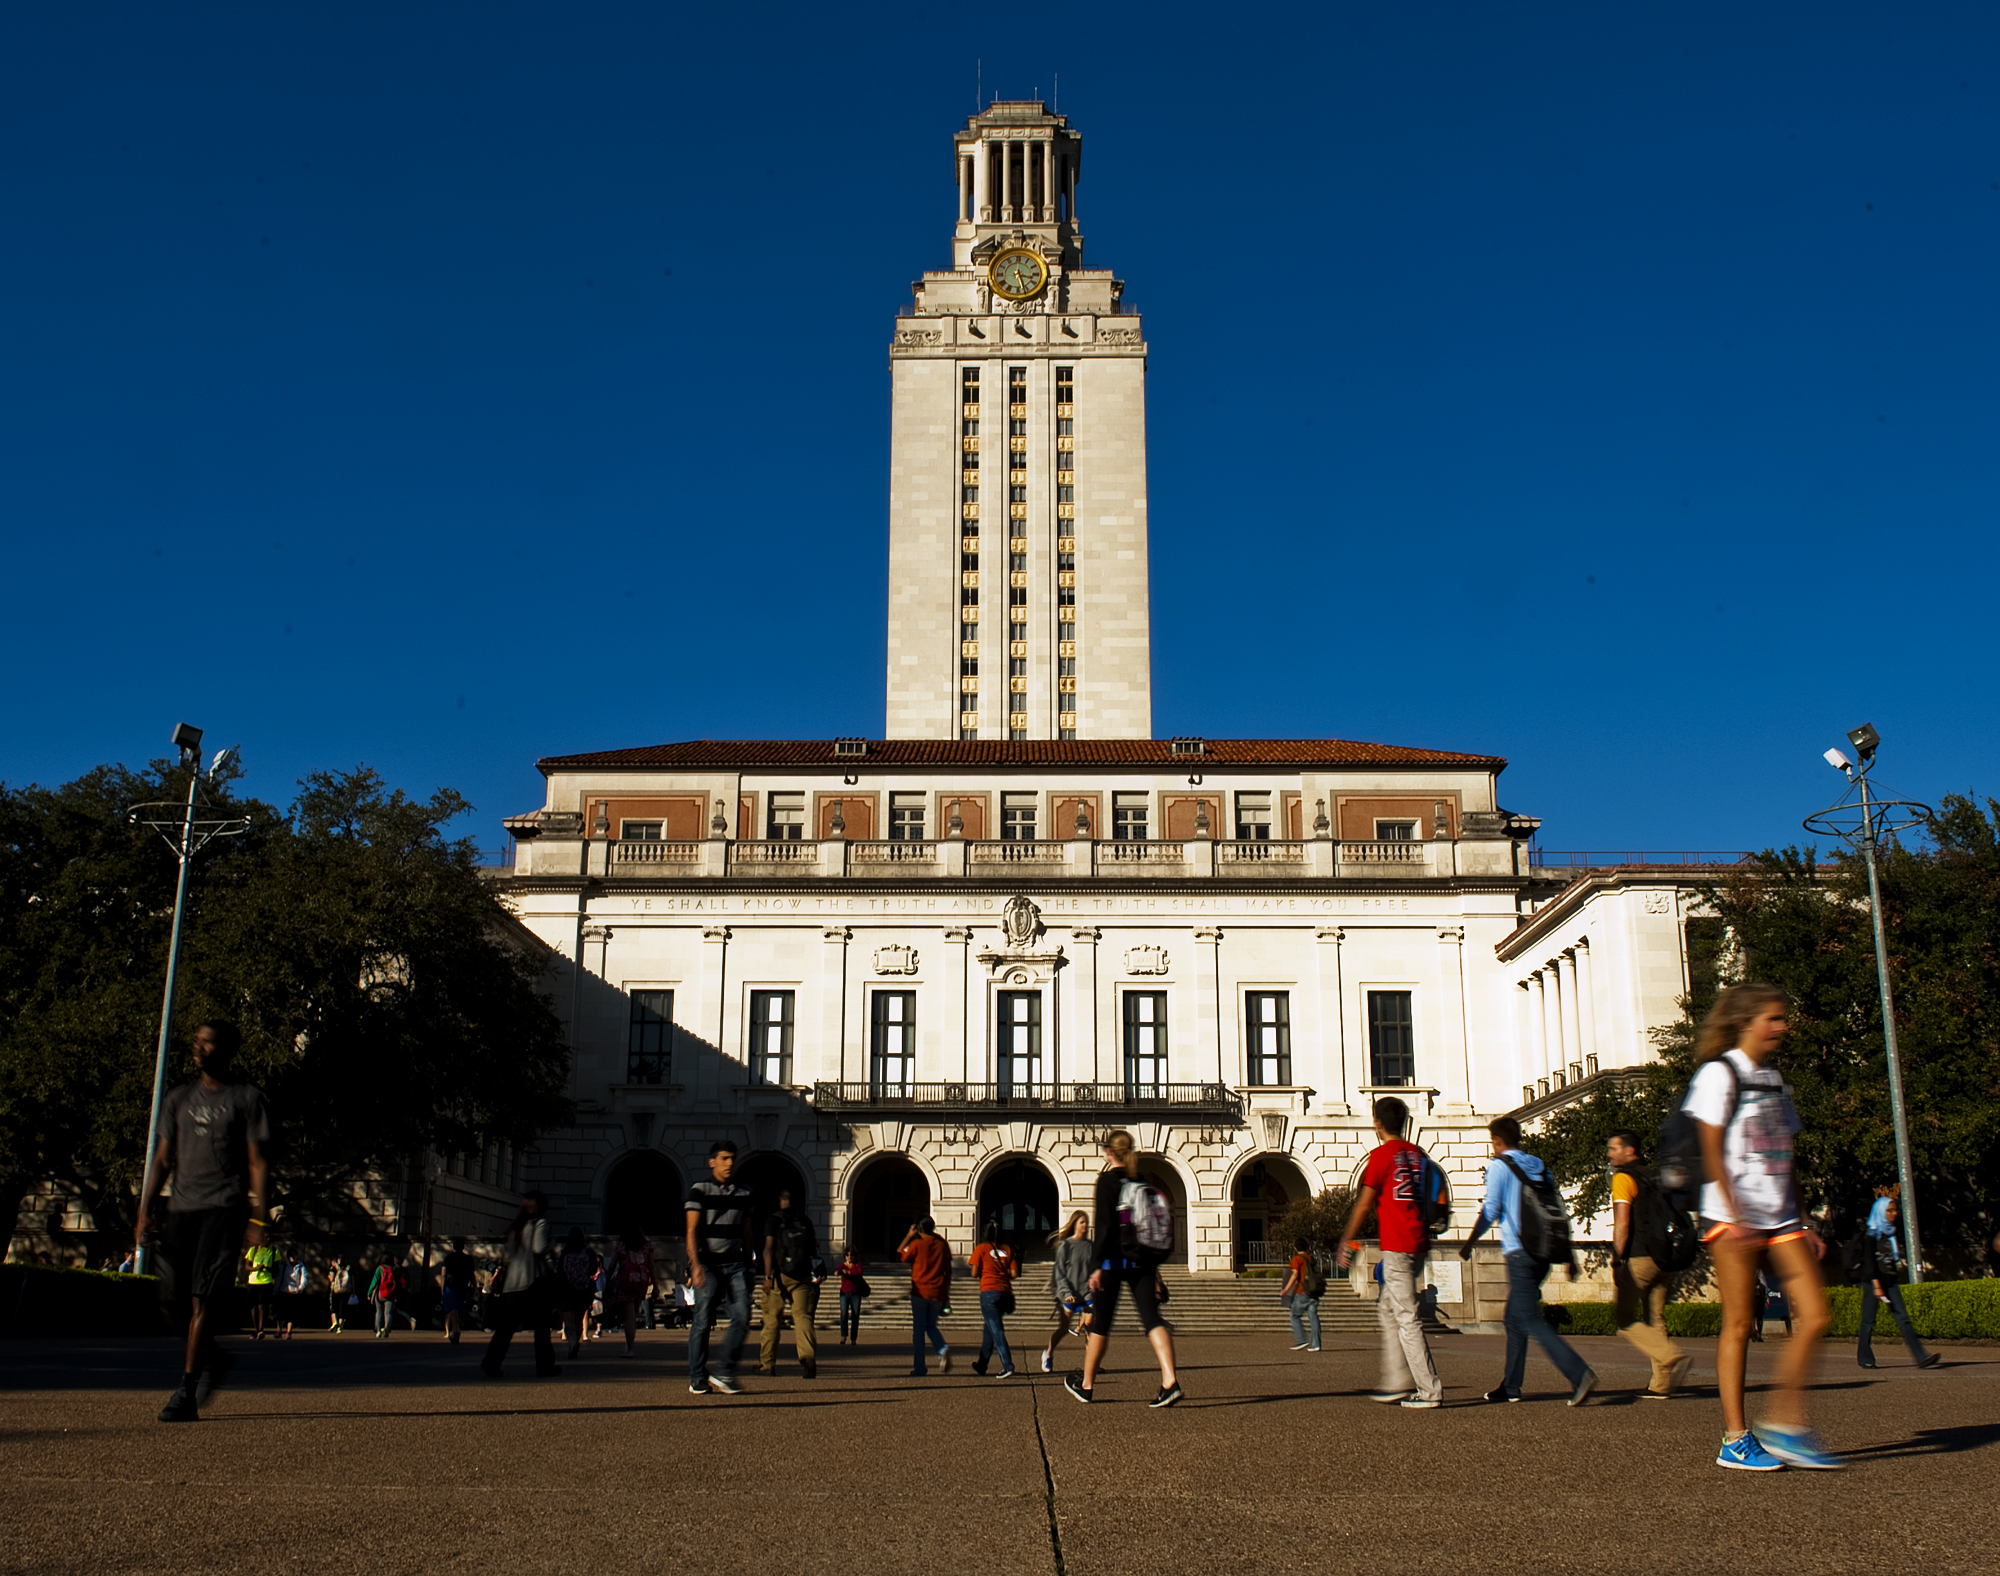 Texas schools rank among Forbes' top colleges in 2018